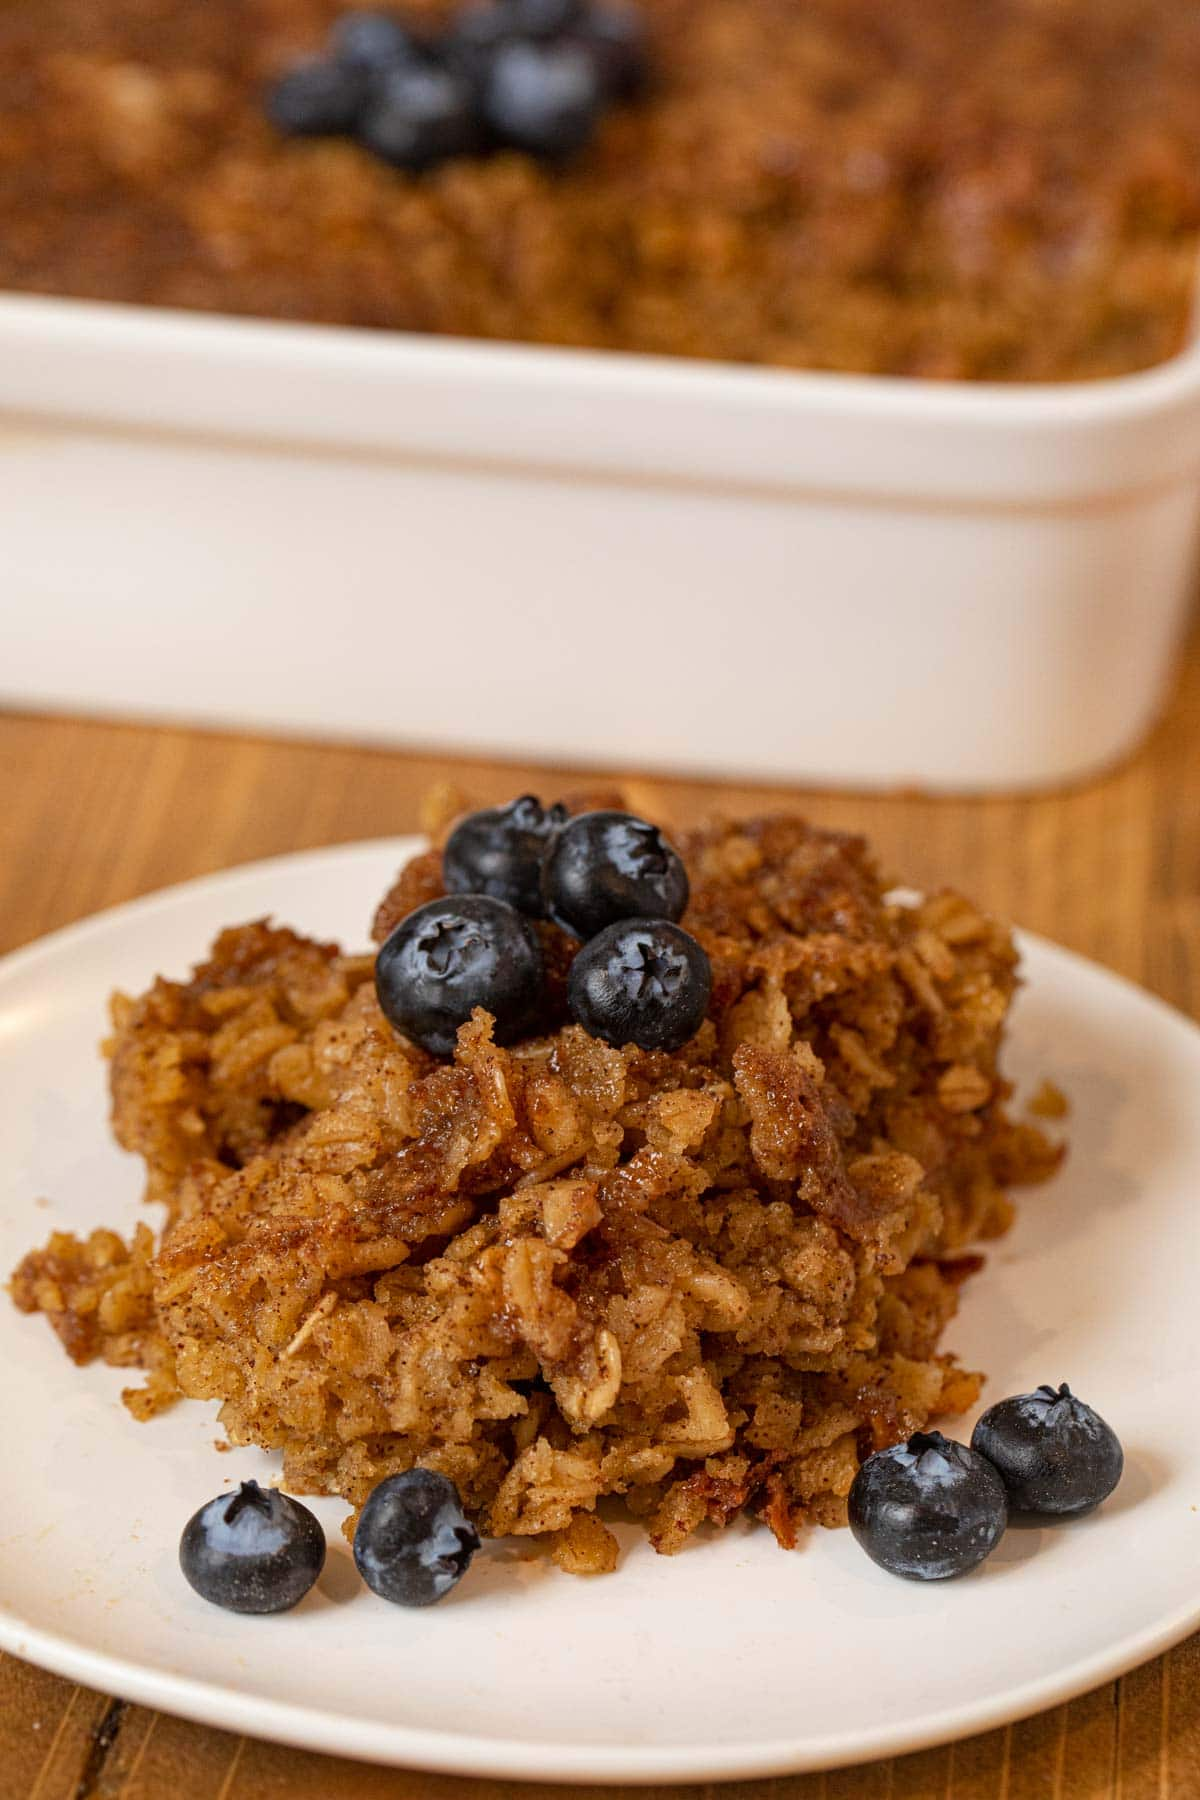 Baked Oatmeal on plate with blueberries